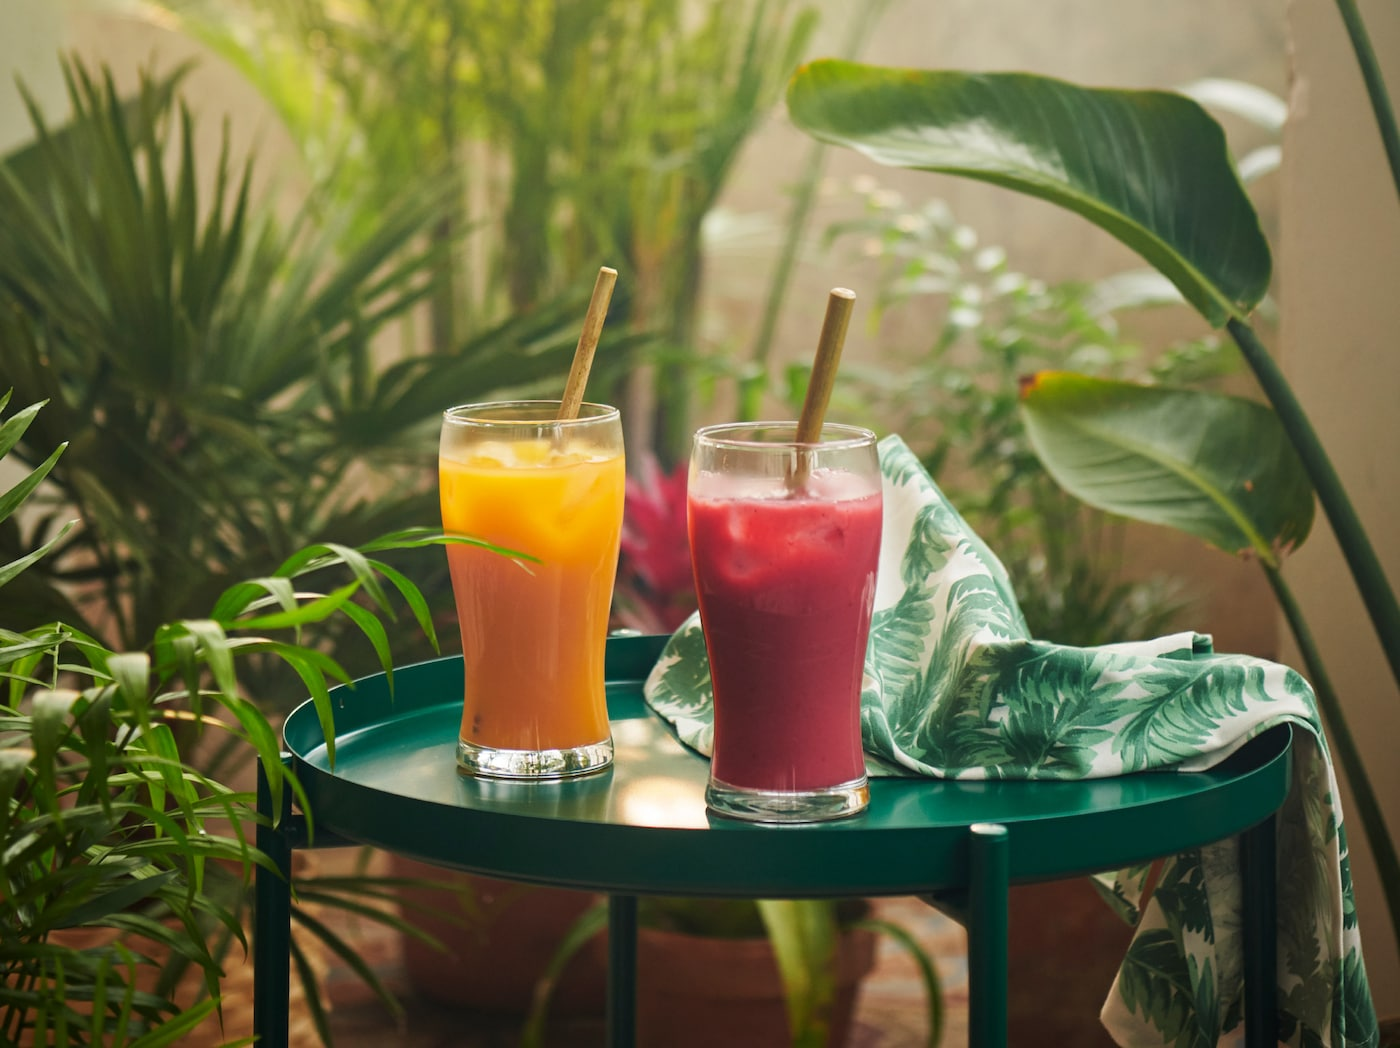 Two glasses with FRUKSTUND pre-blended smoothie mixes in tropical yellow and strawberry red placed on a table among plants.